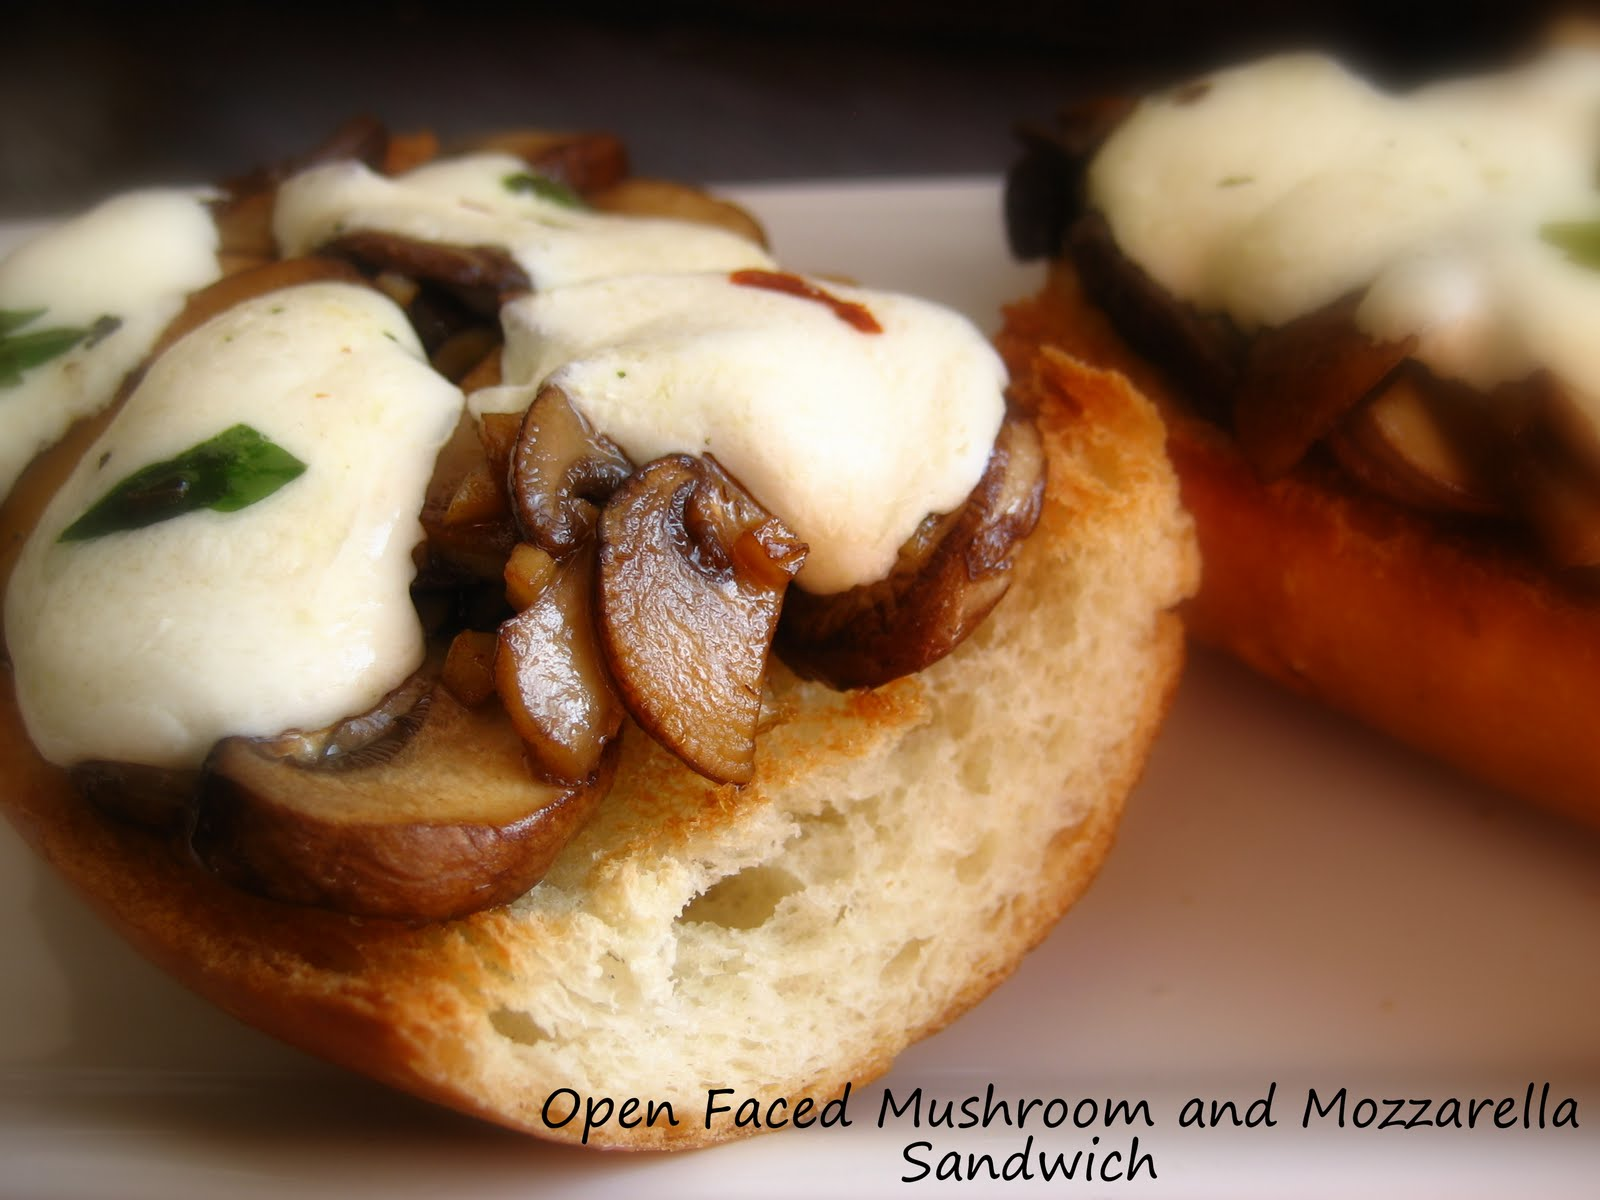 Home Cooking In Montana: Open-Faced Mushroom, Mozzarella ...